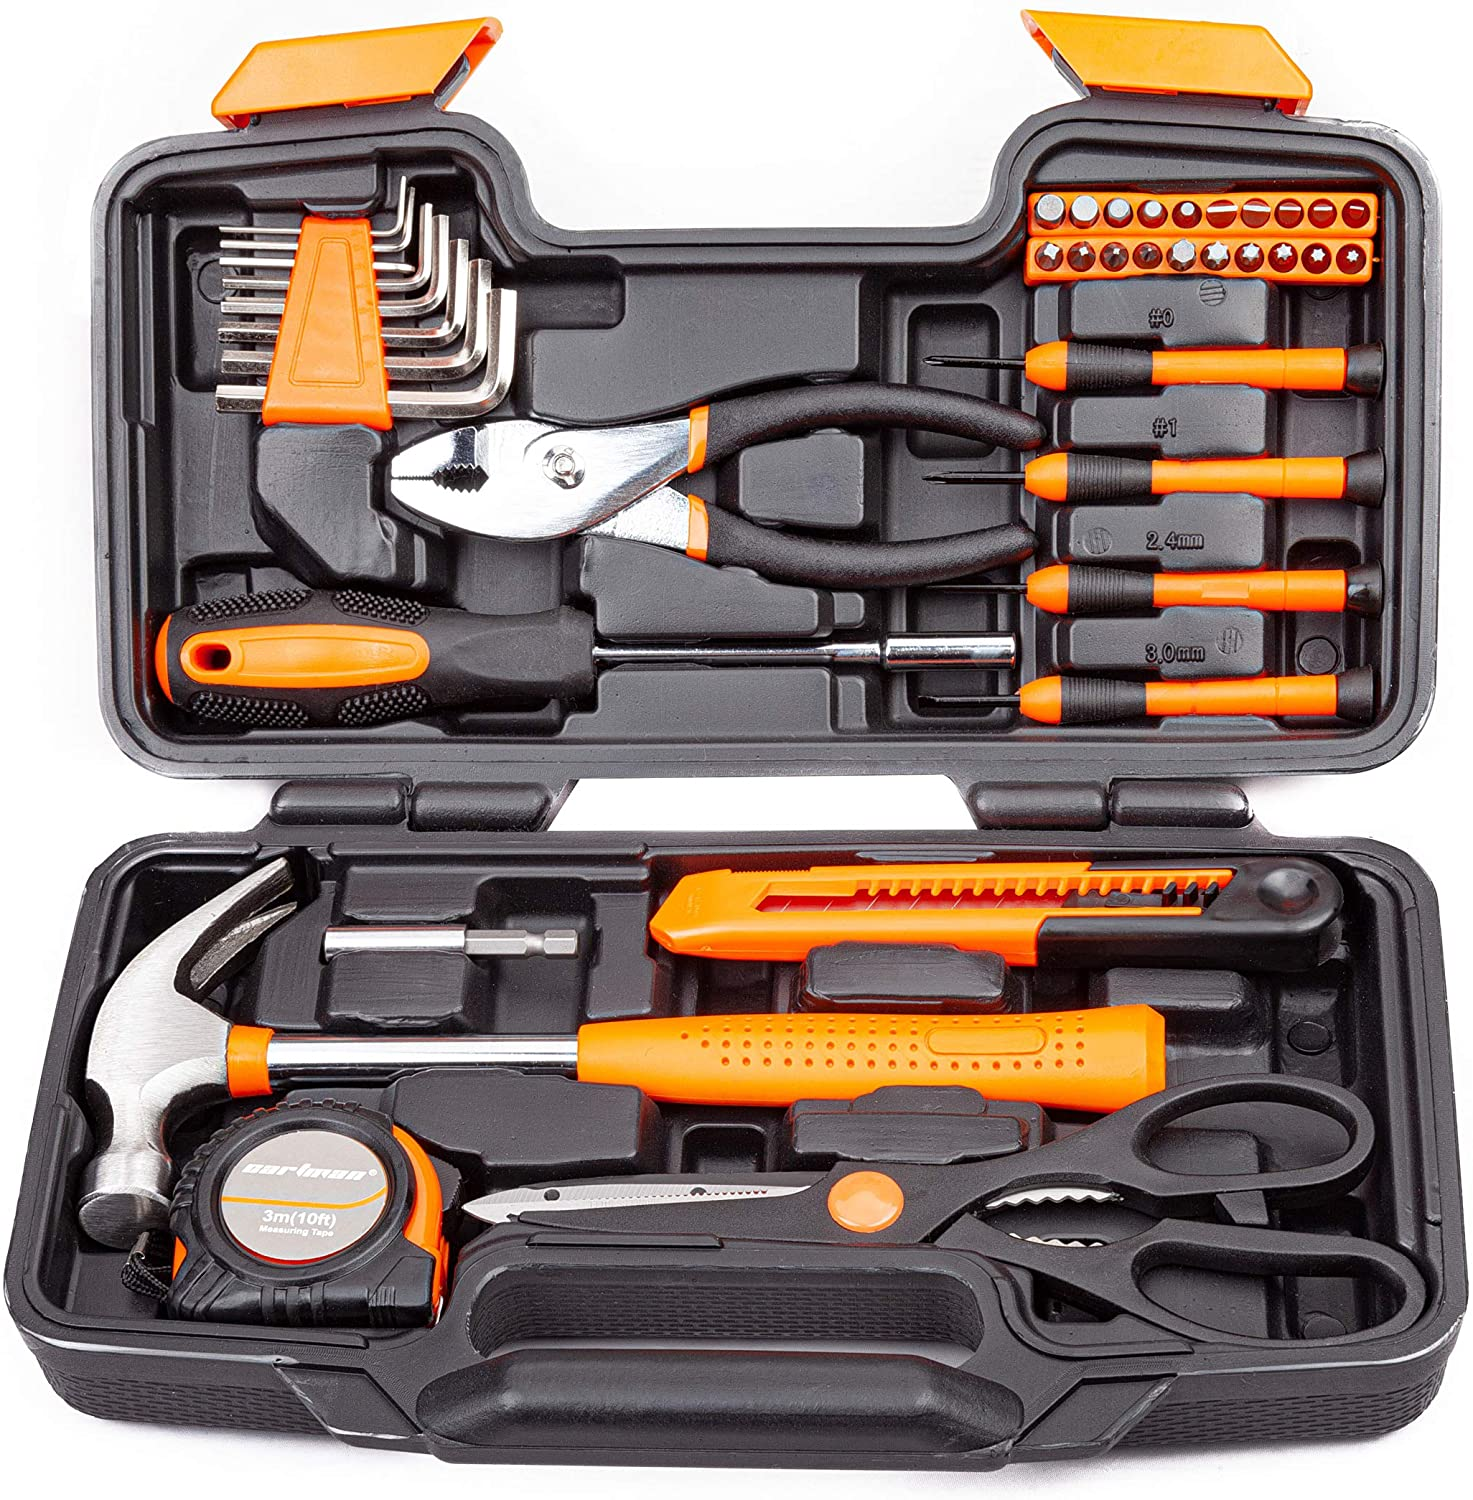 Cartman Orange 39-piece tool set